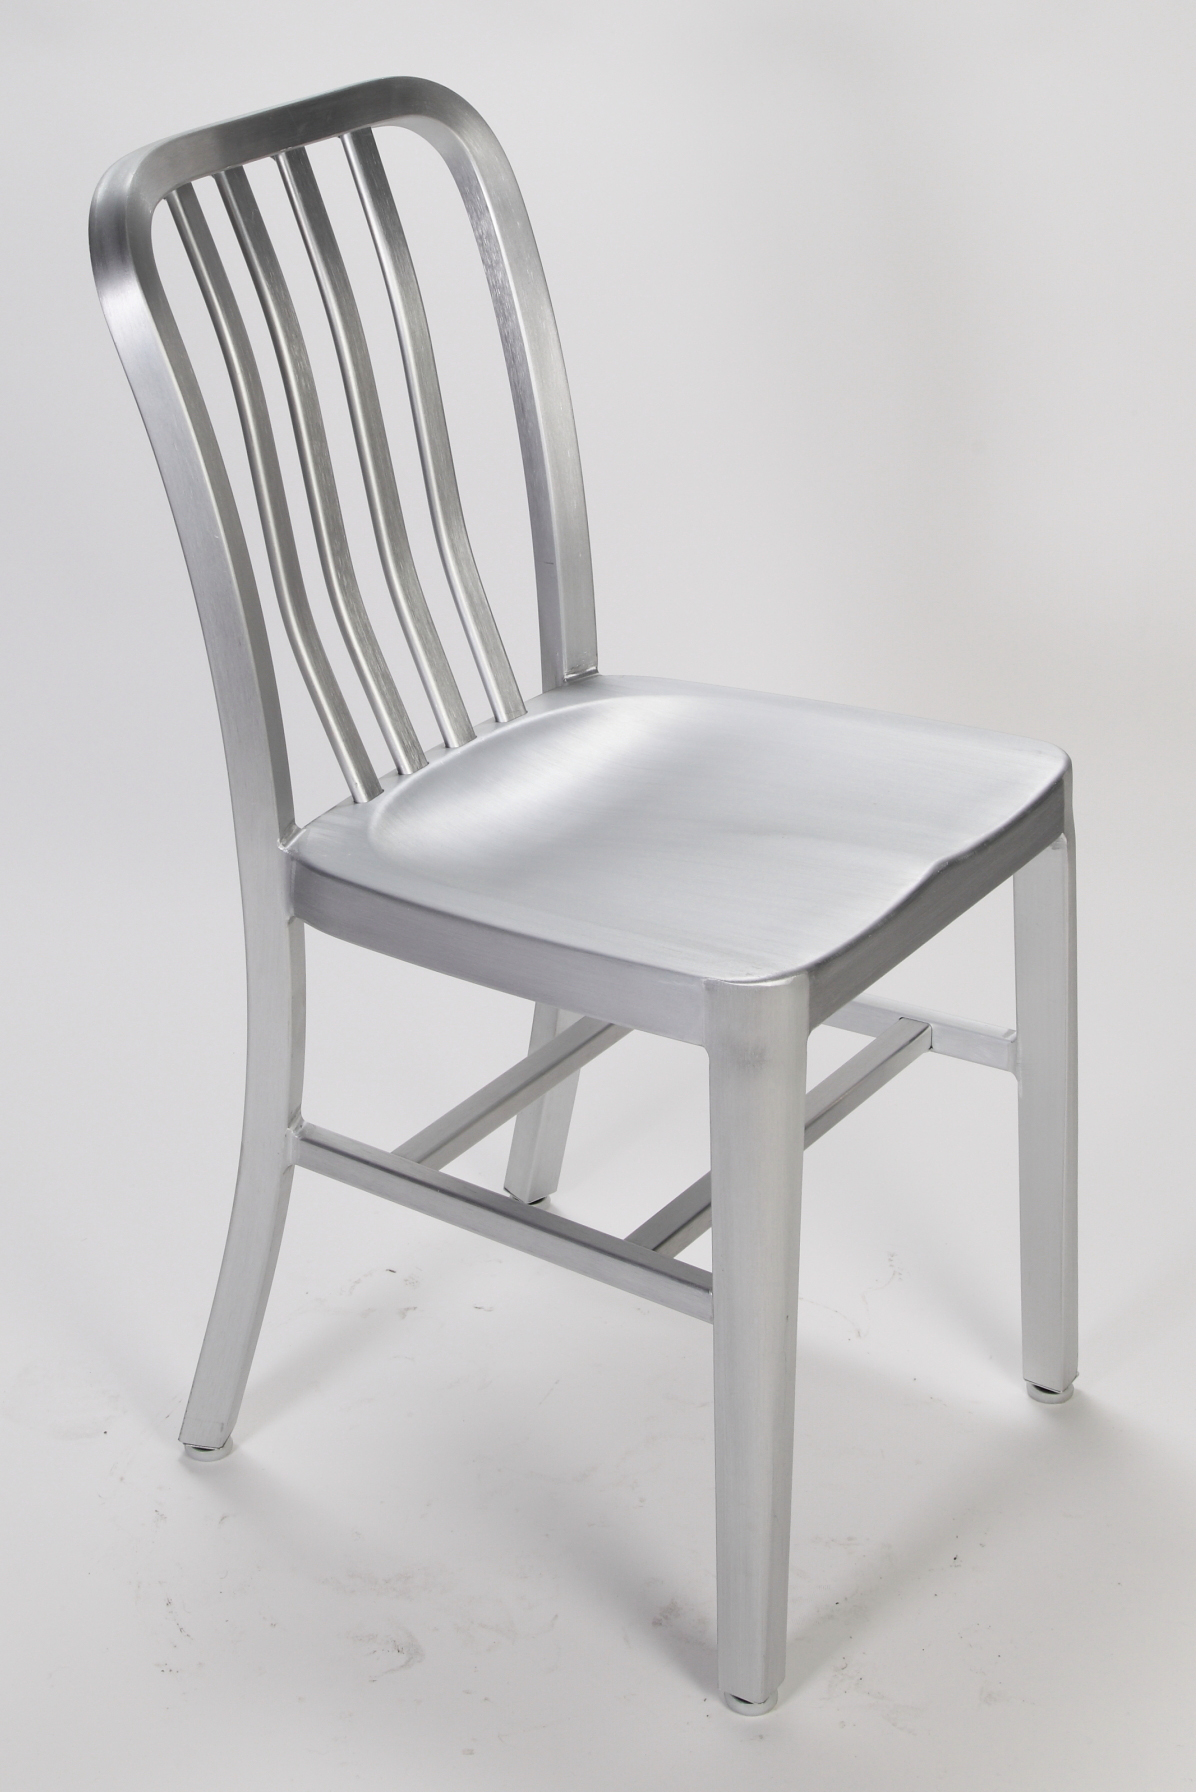 chair design restaurant and a half swivel rocker recliner brushed aluminum dining seating depot chairs